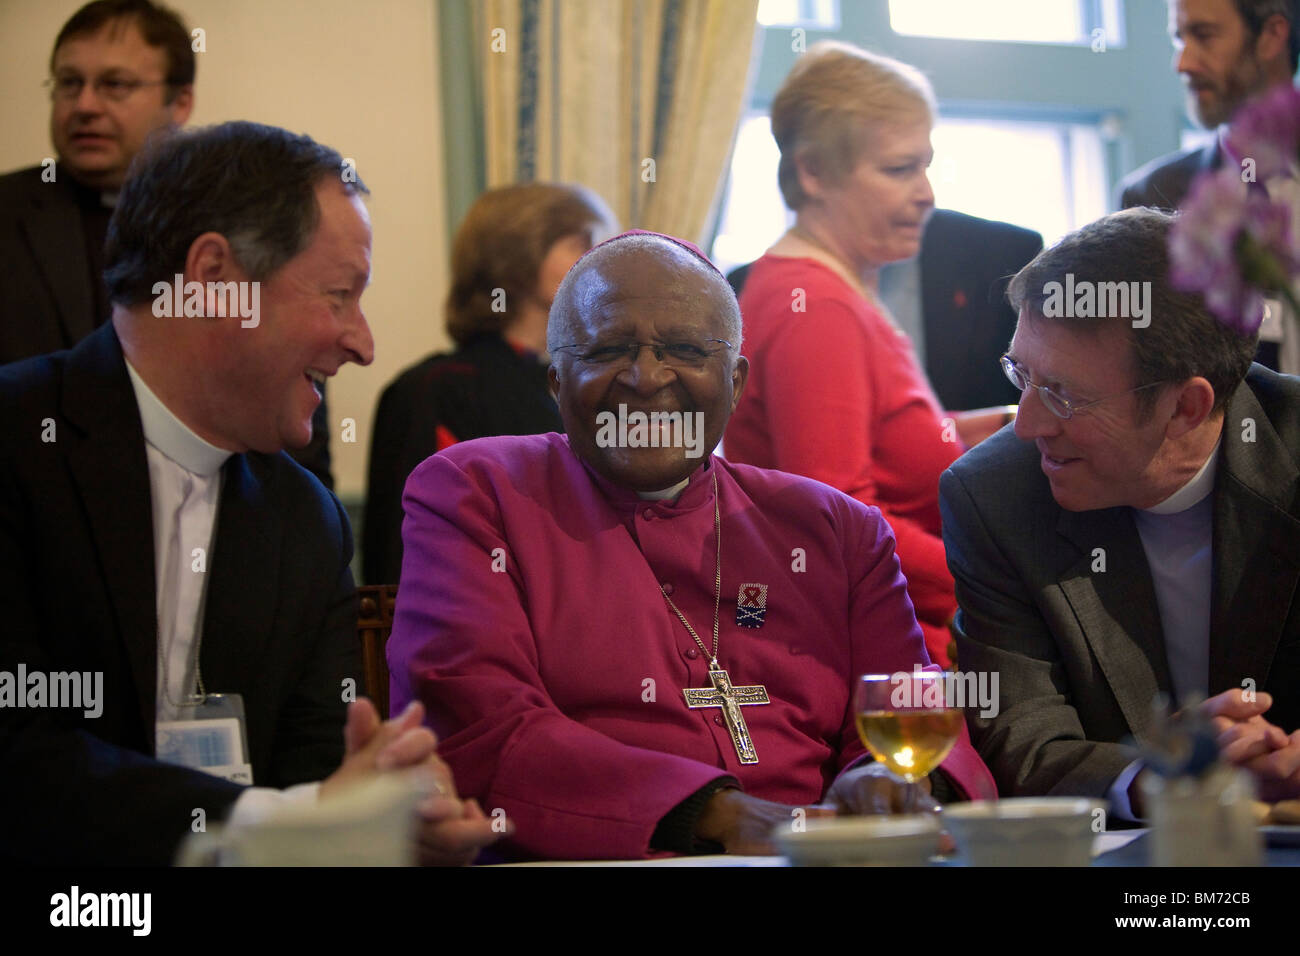 Archbishop Desmond Tutu attends The 2009 General Assembly of the Church of Scotland. - Stock Image